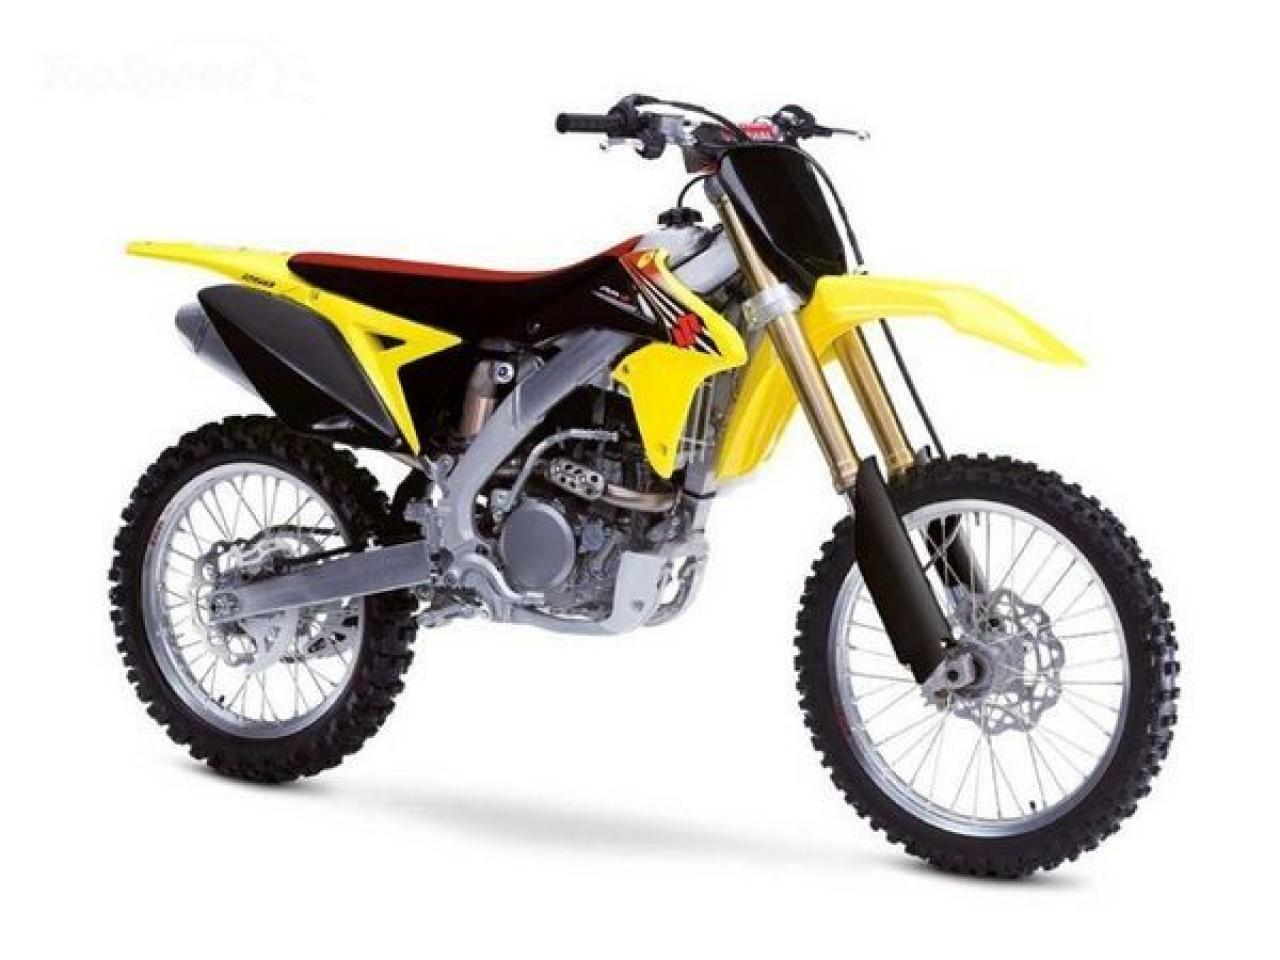 2013 suzuki rm 85 l moto zombdrive com. Black Bedroom Furniture Sets. Home Design Ideas